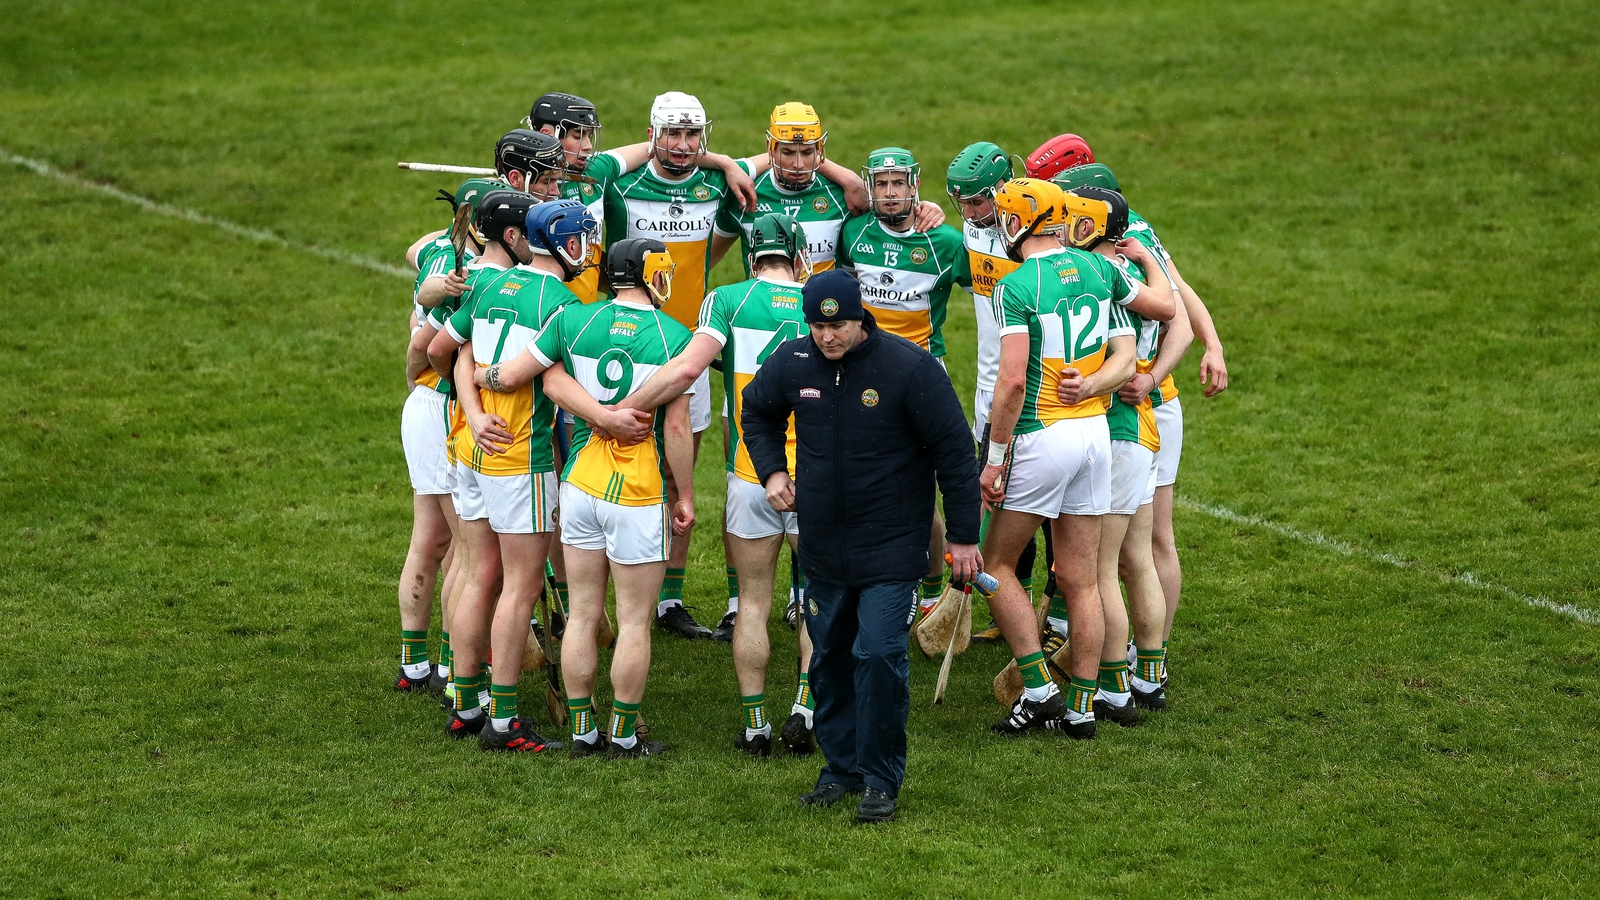 Whats on in Offaly - Tusla